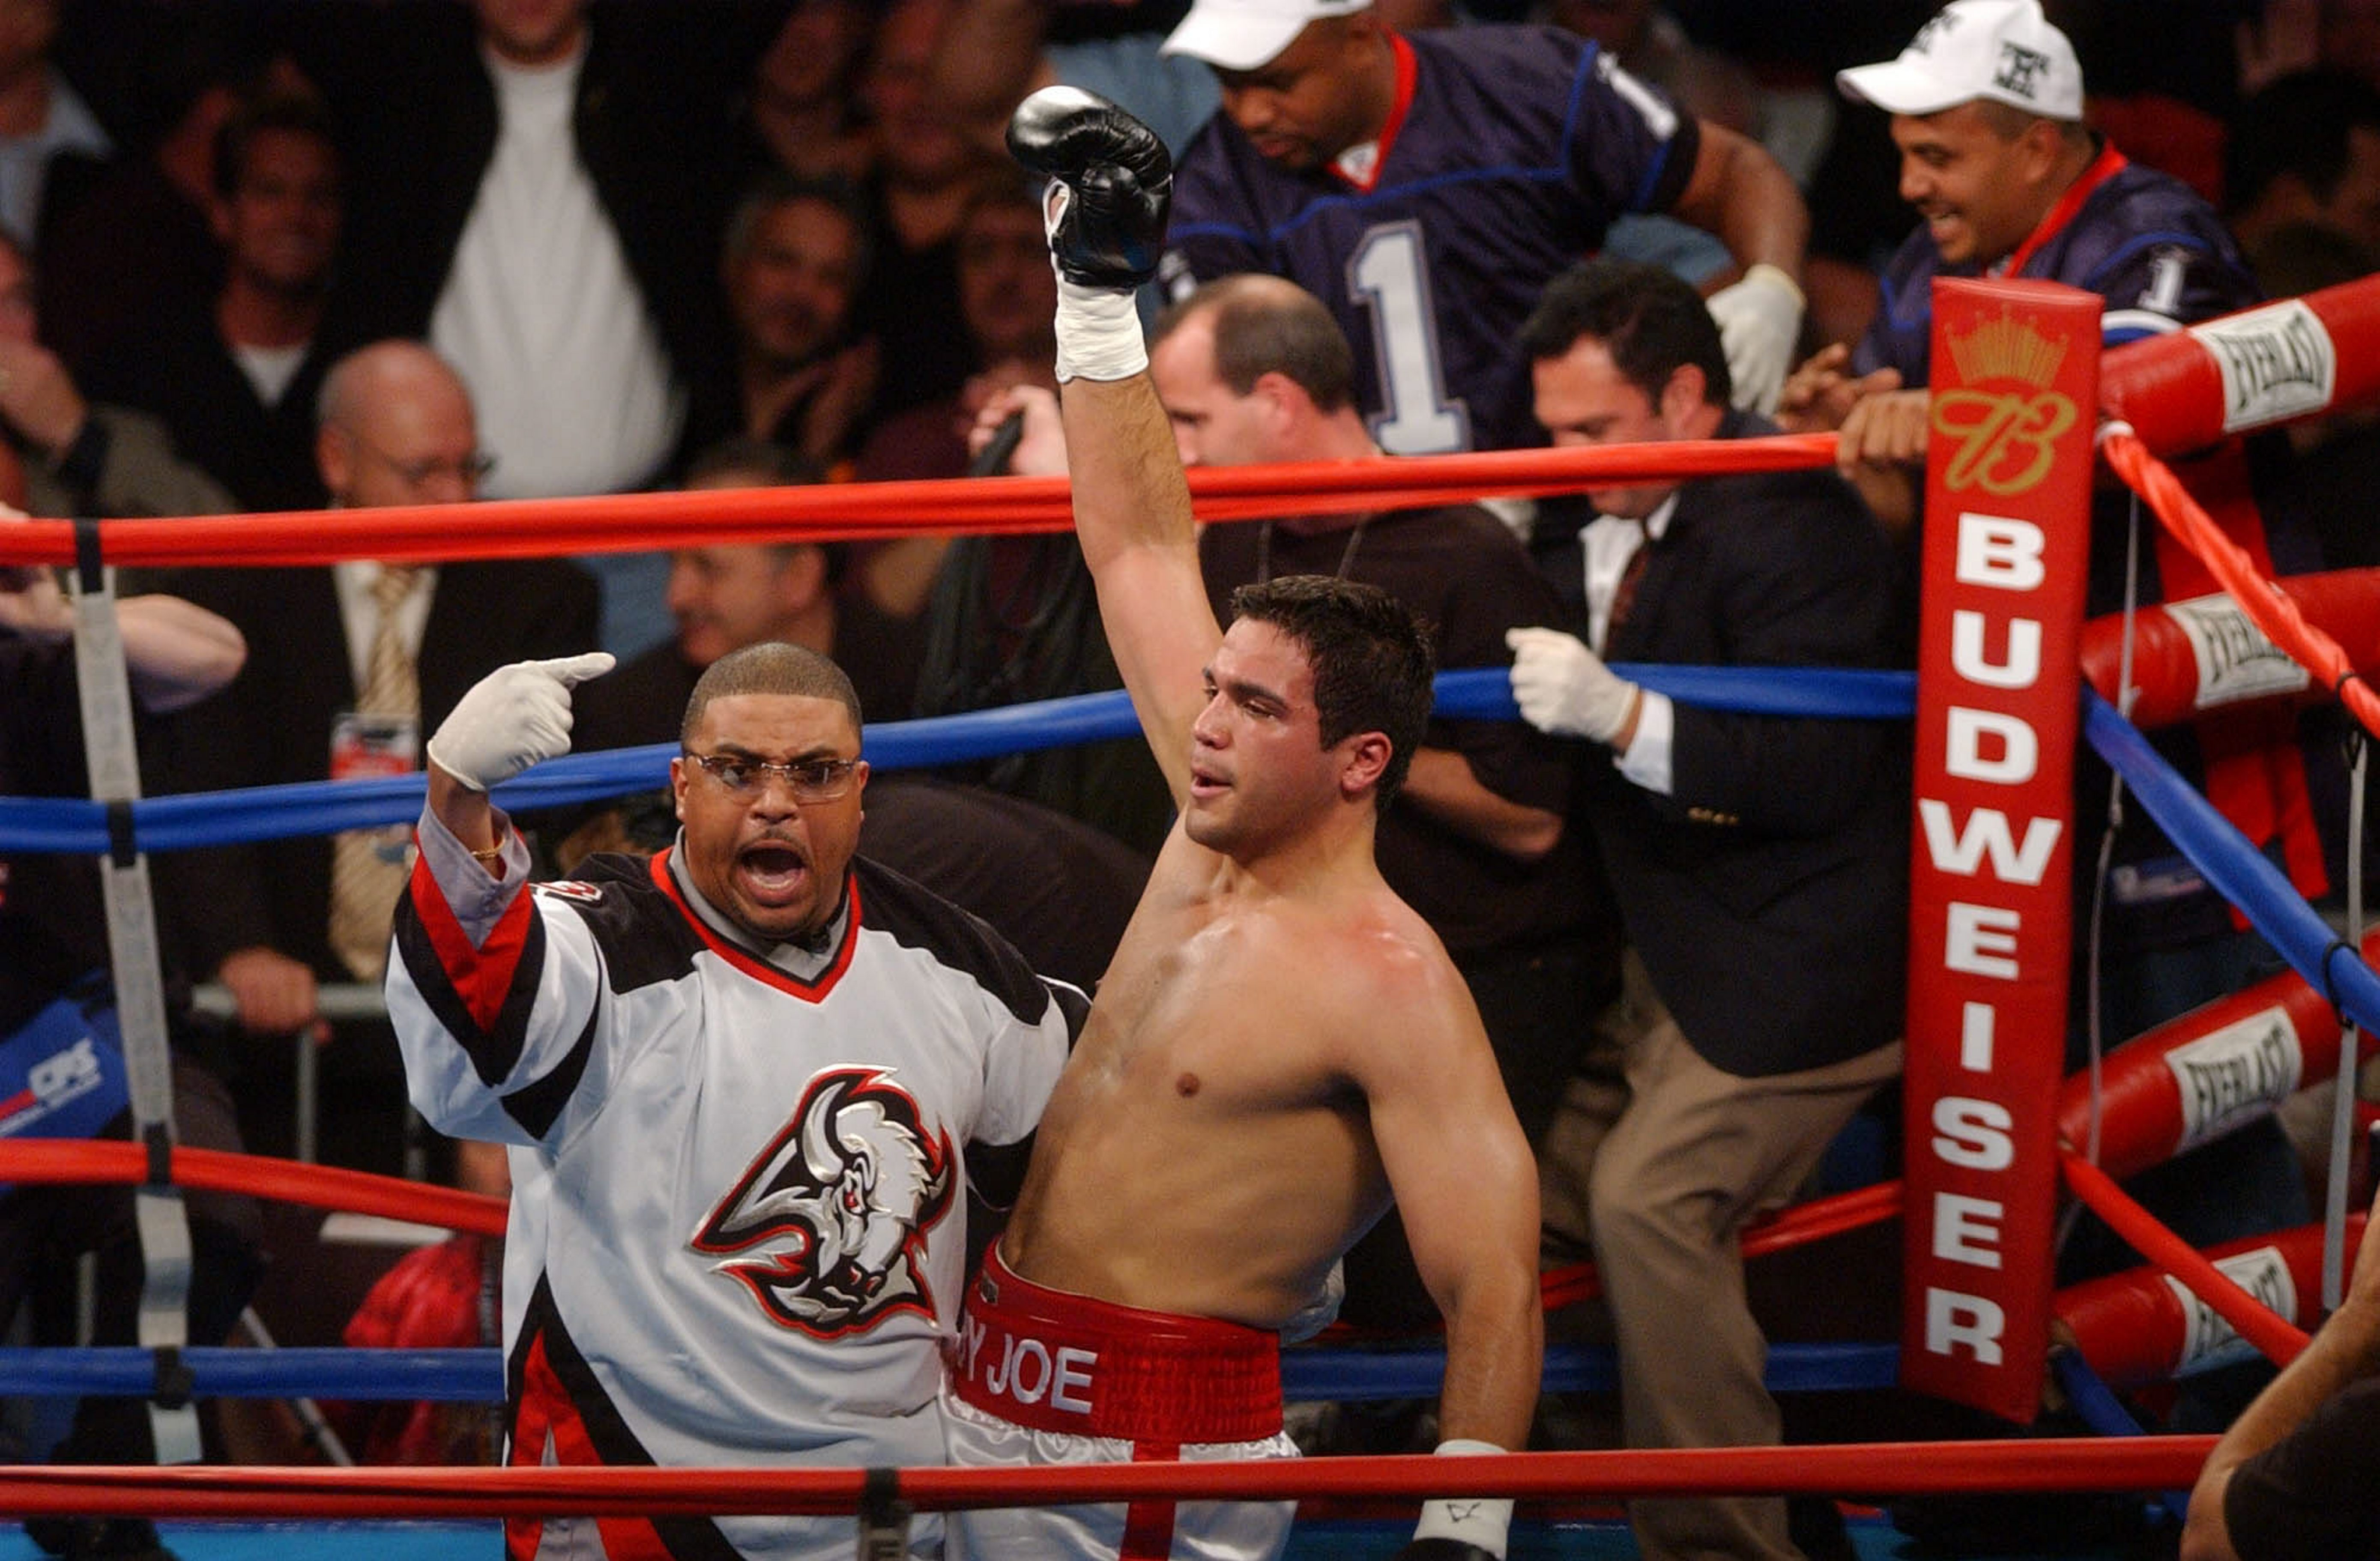 Trainer Juan DeLeon celebrates with Baby Joe Mesi after his first-round knockout of DaVarryl Williamson at then-HSBC Arena on Sept. 27, 2003.